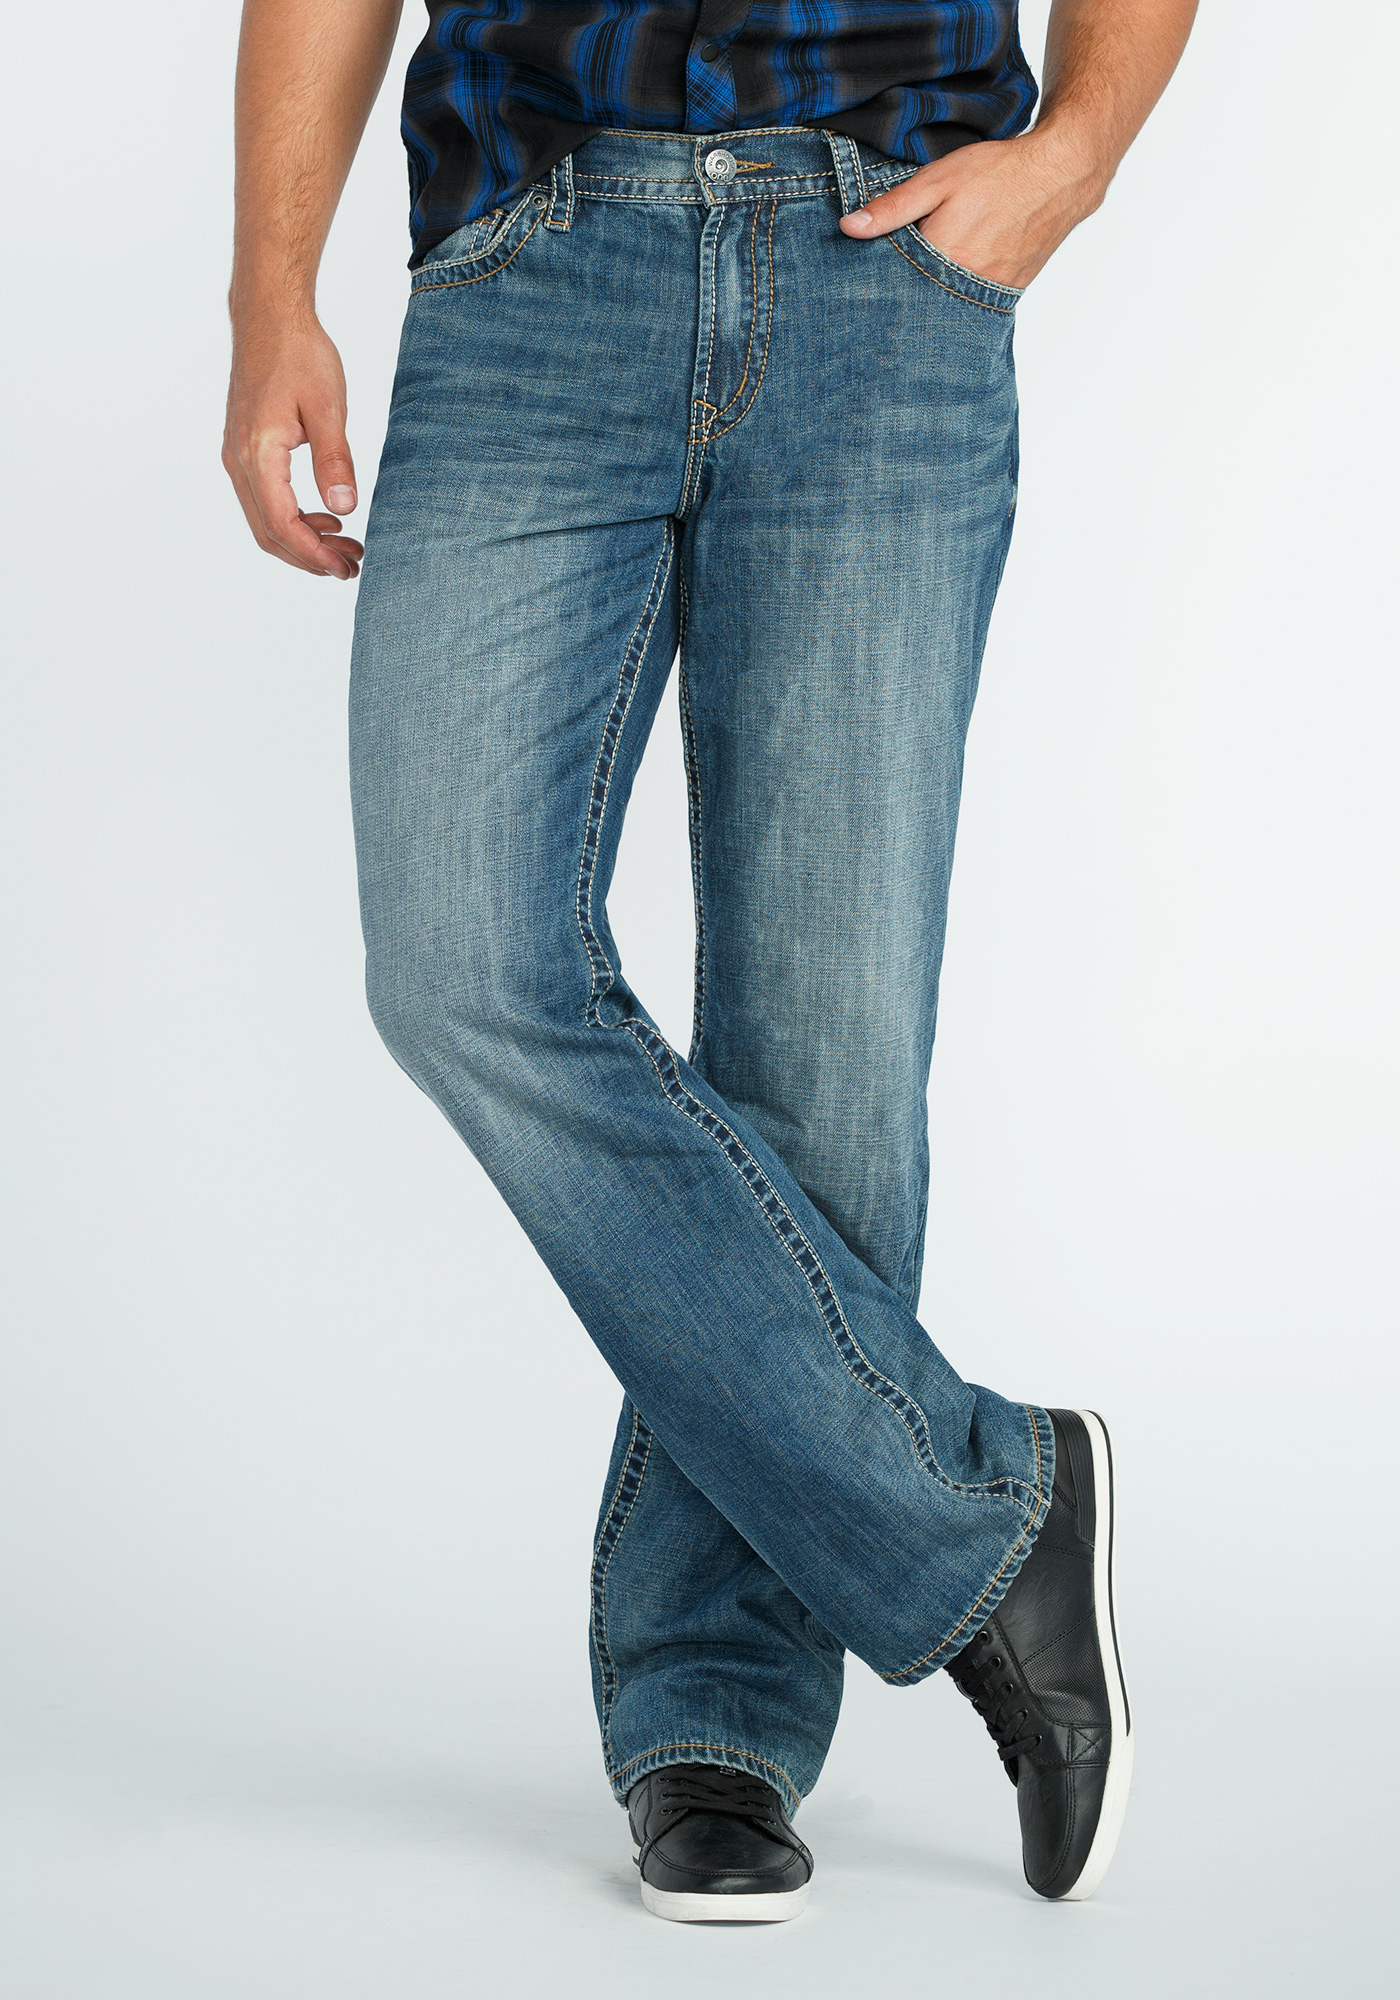 Size 28 Womens Jeans